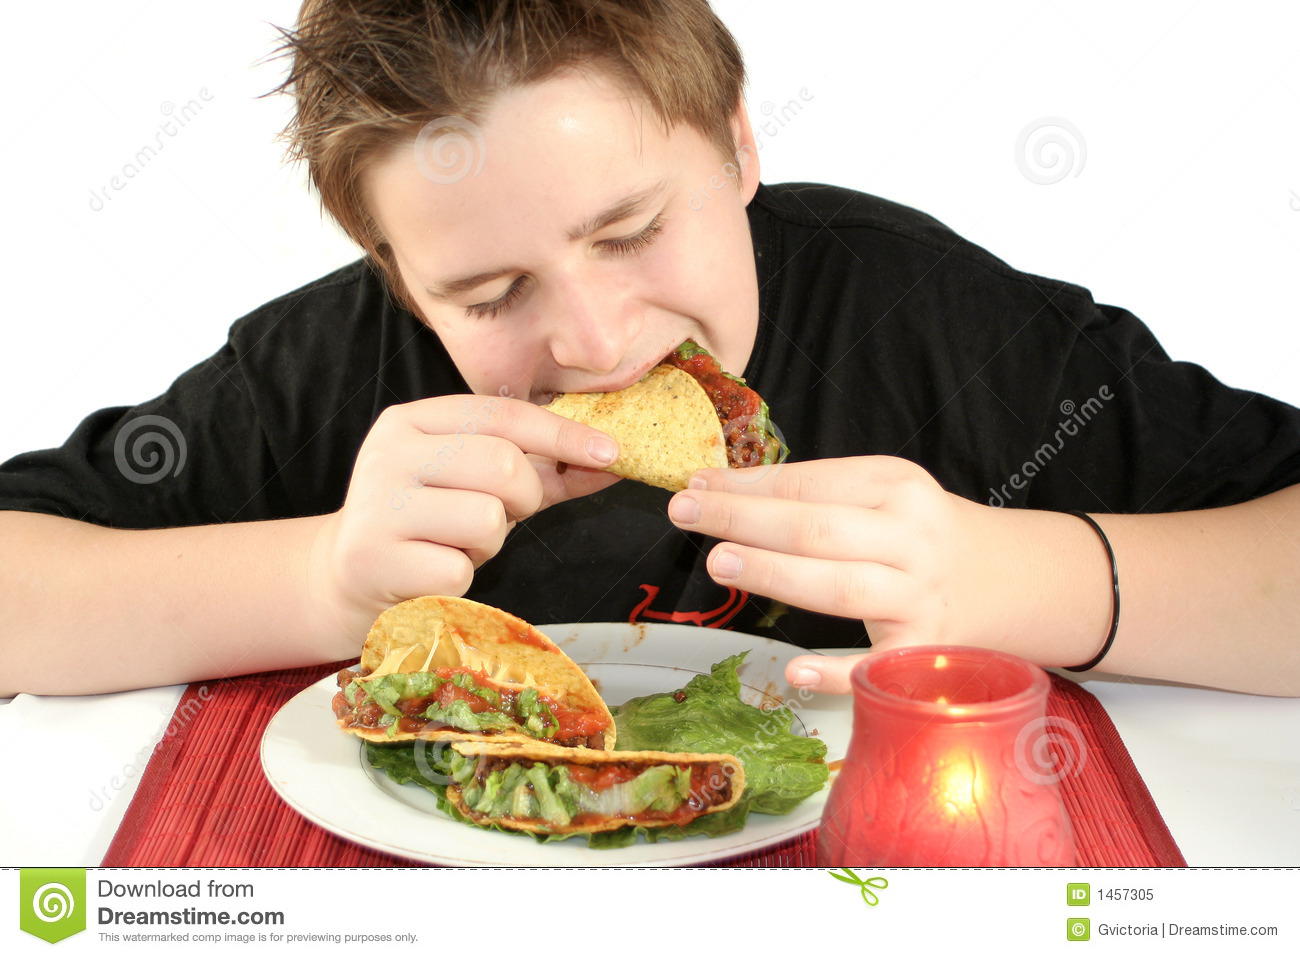 Eating Tacos Royalty Free Stock Photo - Image: 1457305